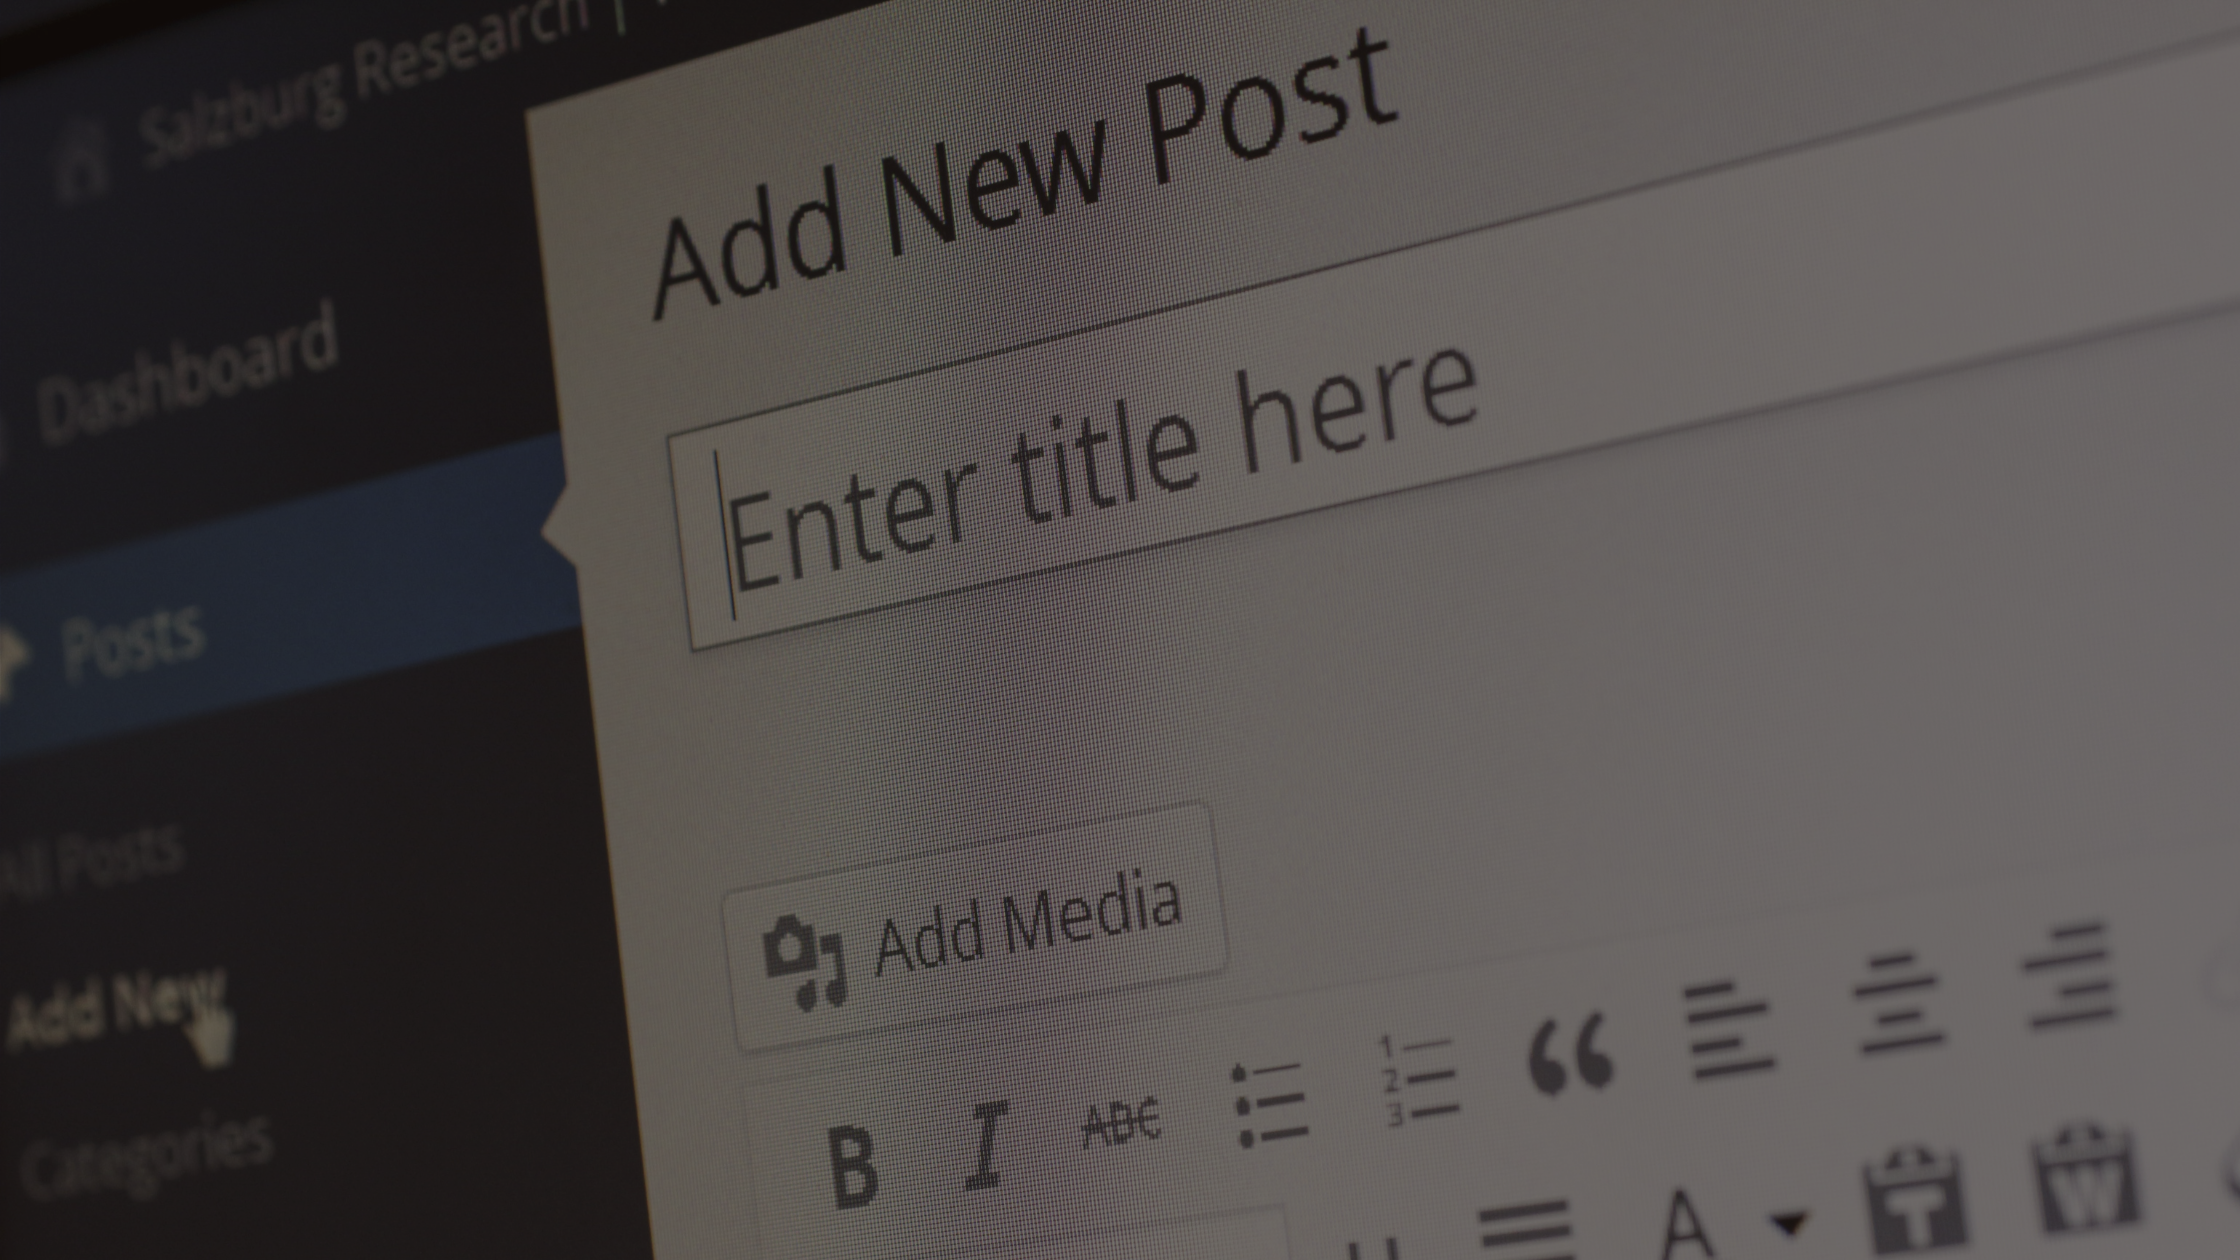 Nicole's guide to long-form B2B content writing